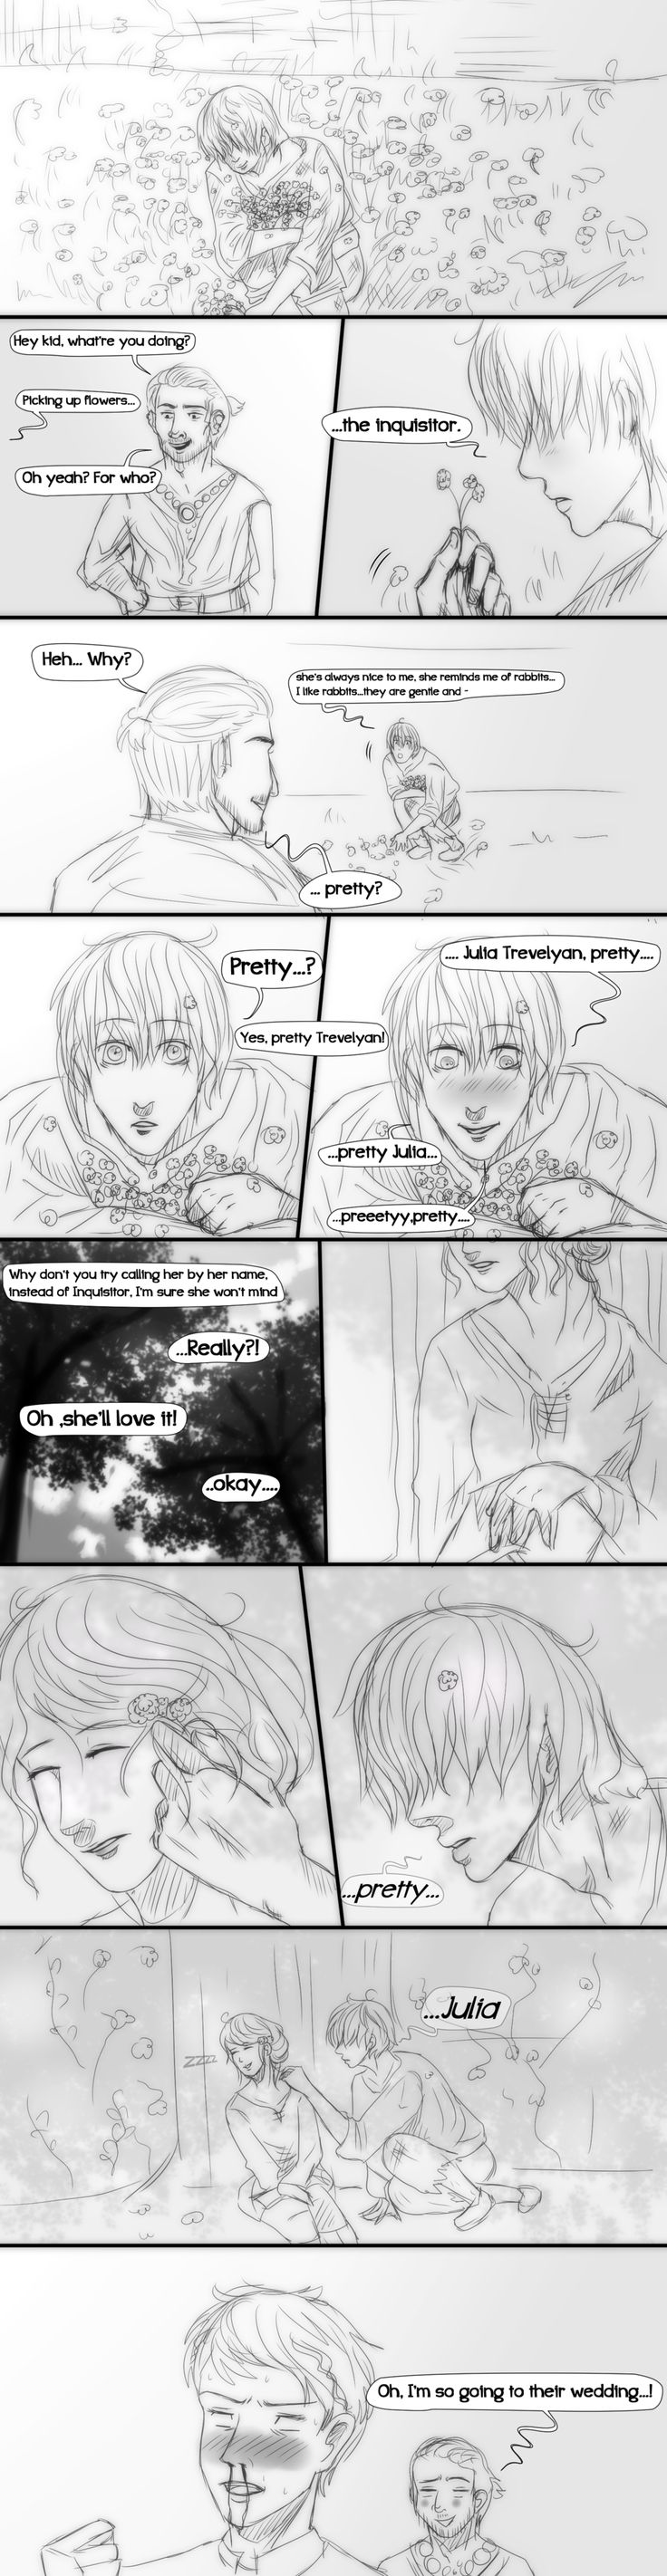 Dragon Age Inquisition- Comic- Pretty by MsArtisticStuff.deviantart.com on @DeviantArt